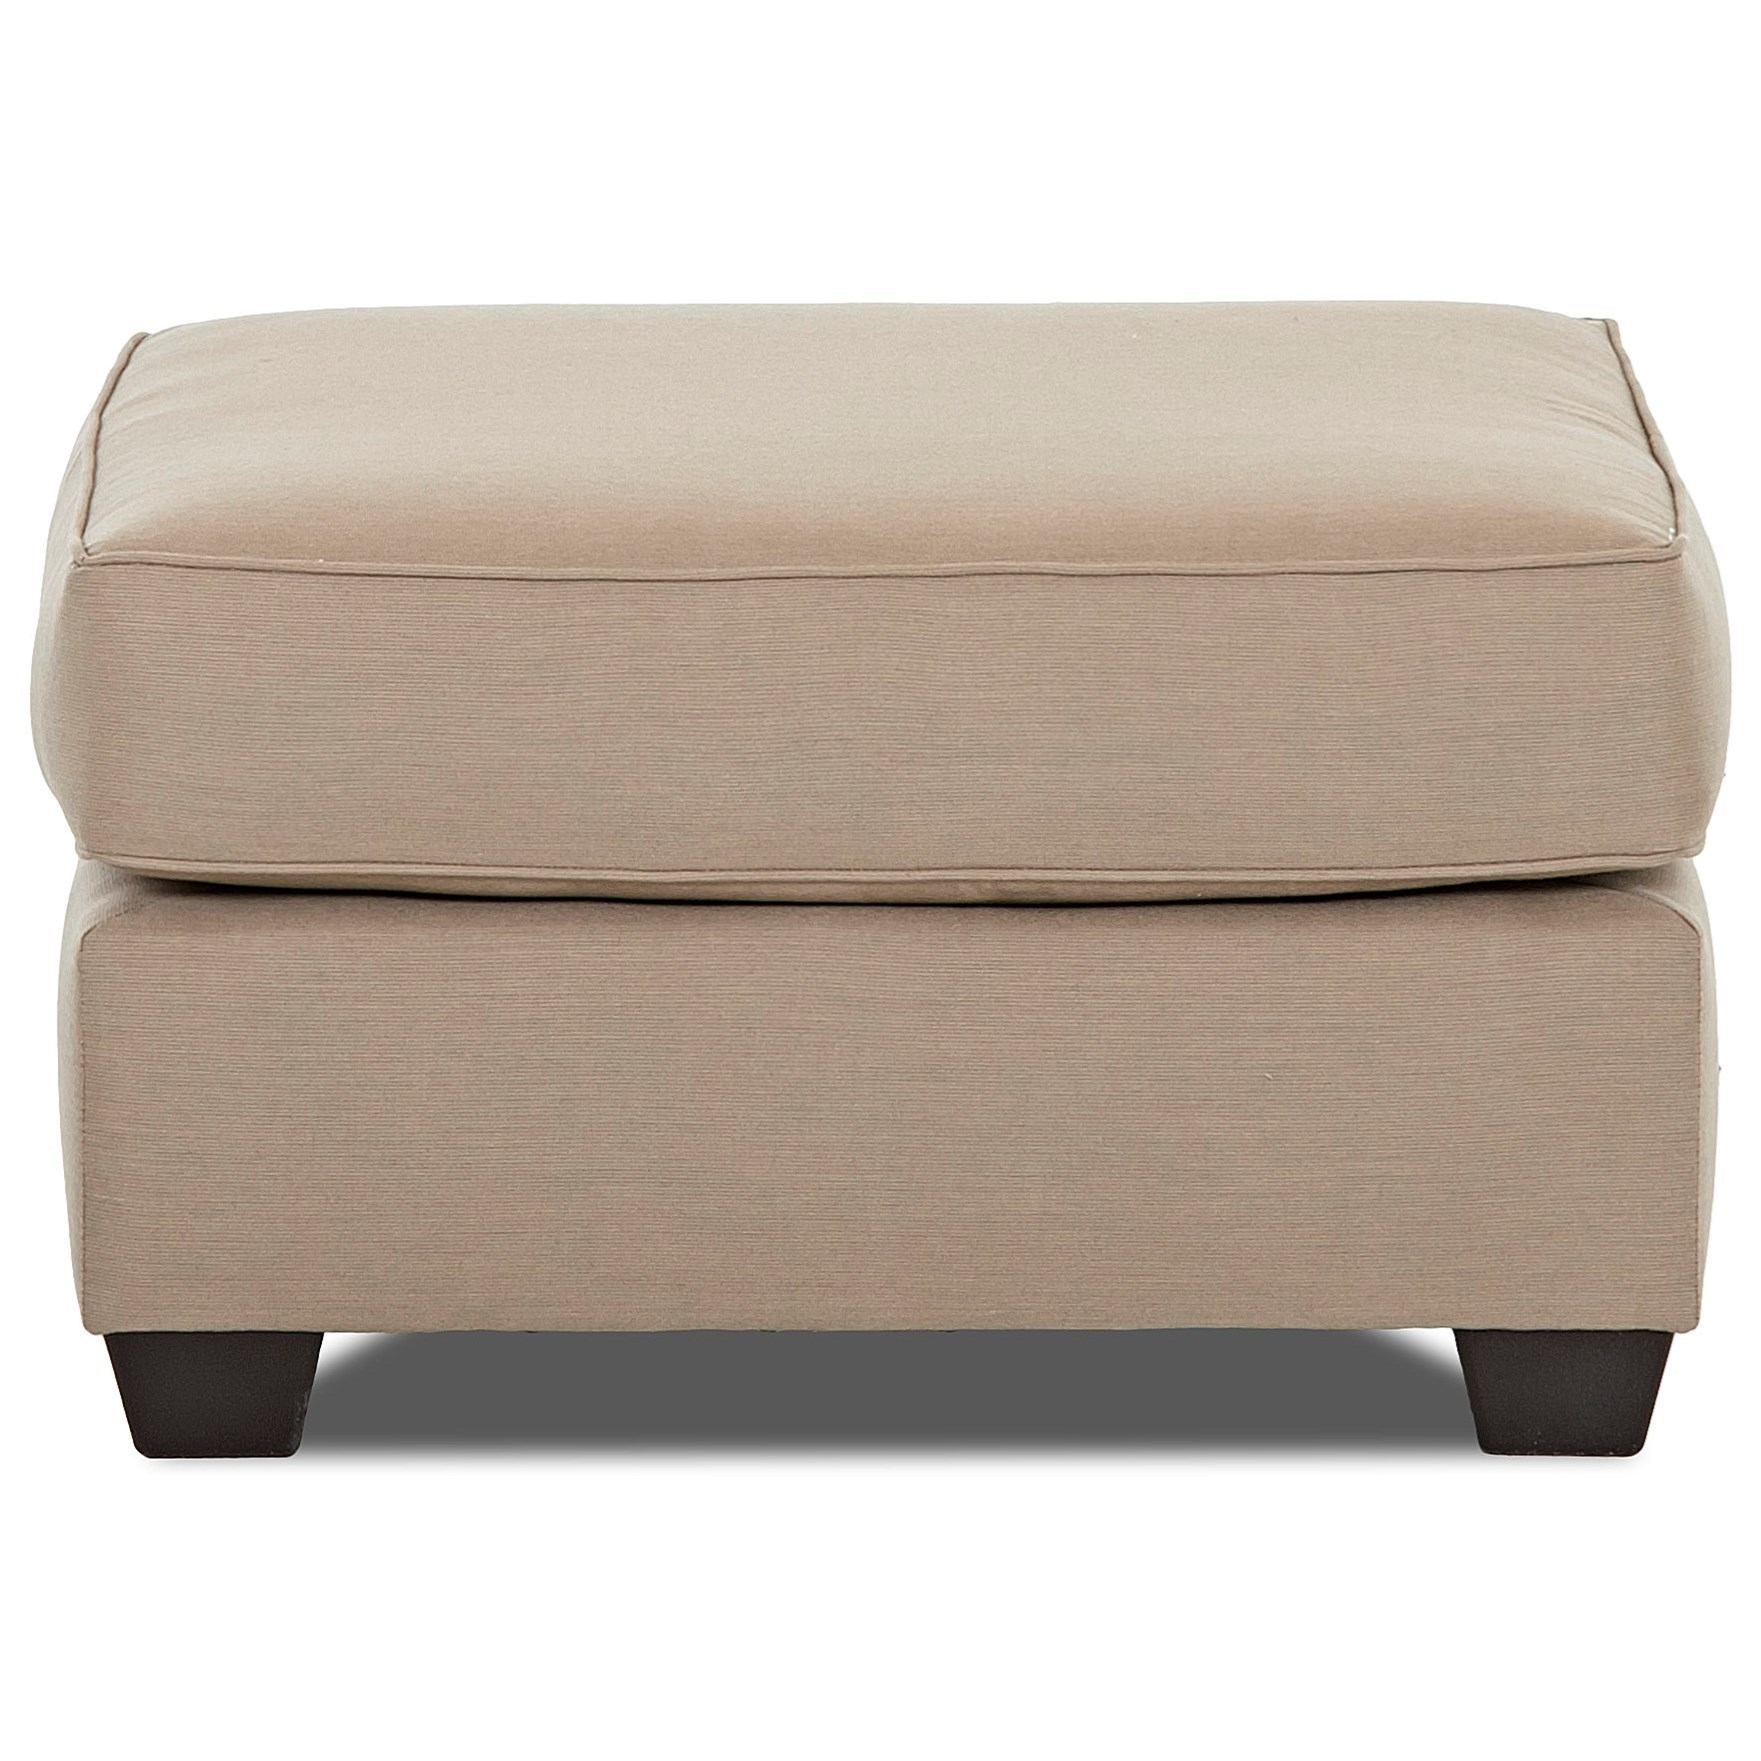 Linville Ottoman by Klaussner at Johnny Janosik